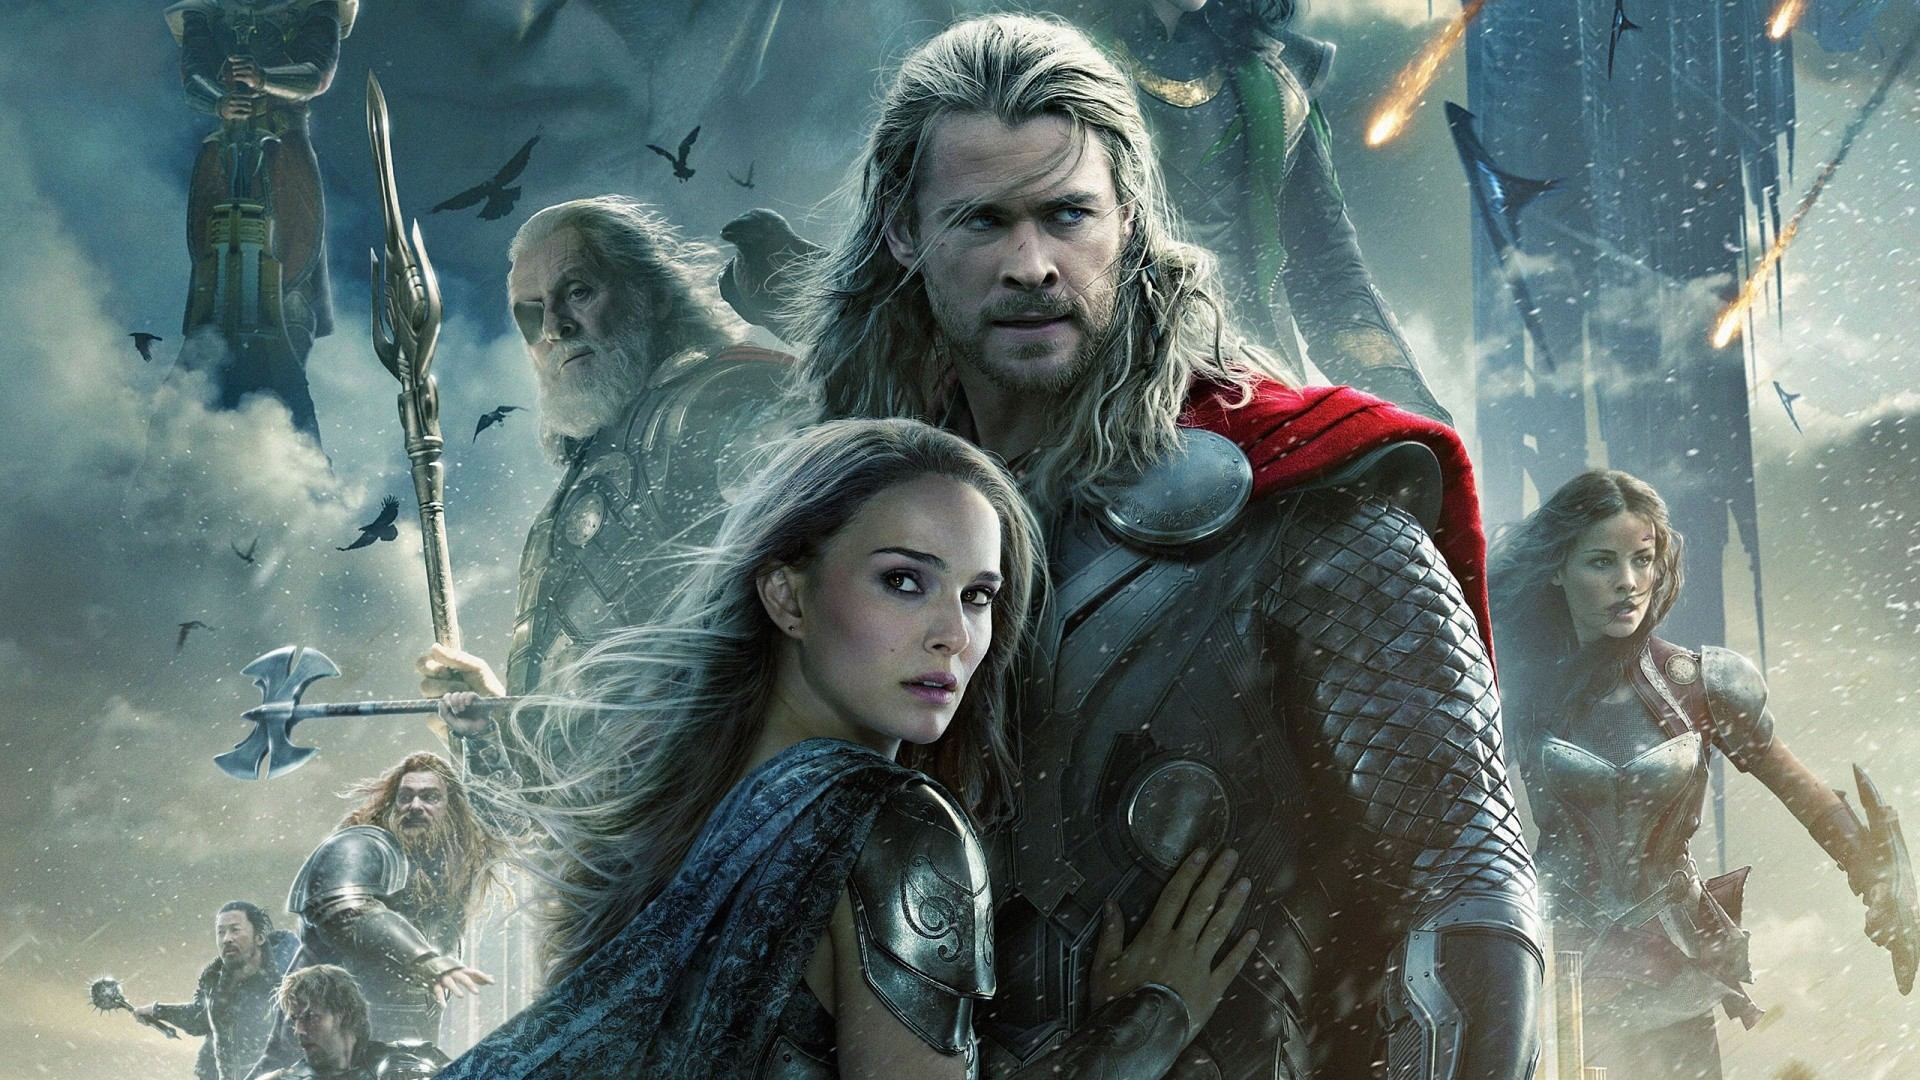 Res: 1920x1080, Marvel Live-action Filme images thor dark world HD wallpaper and background  photos